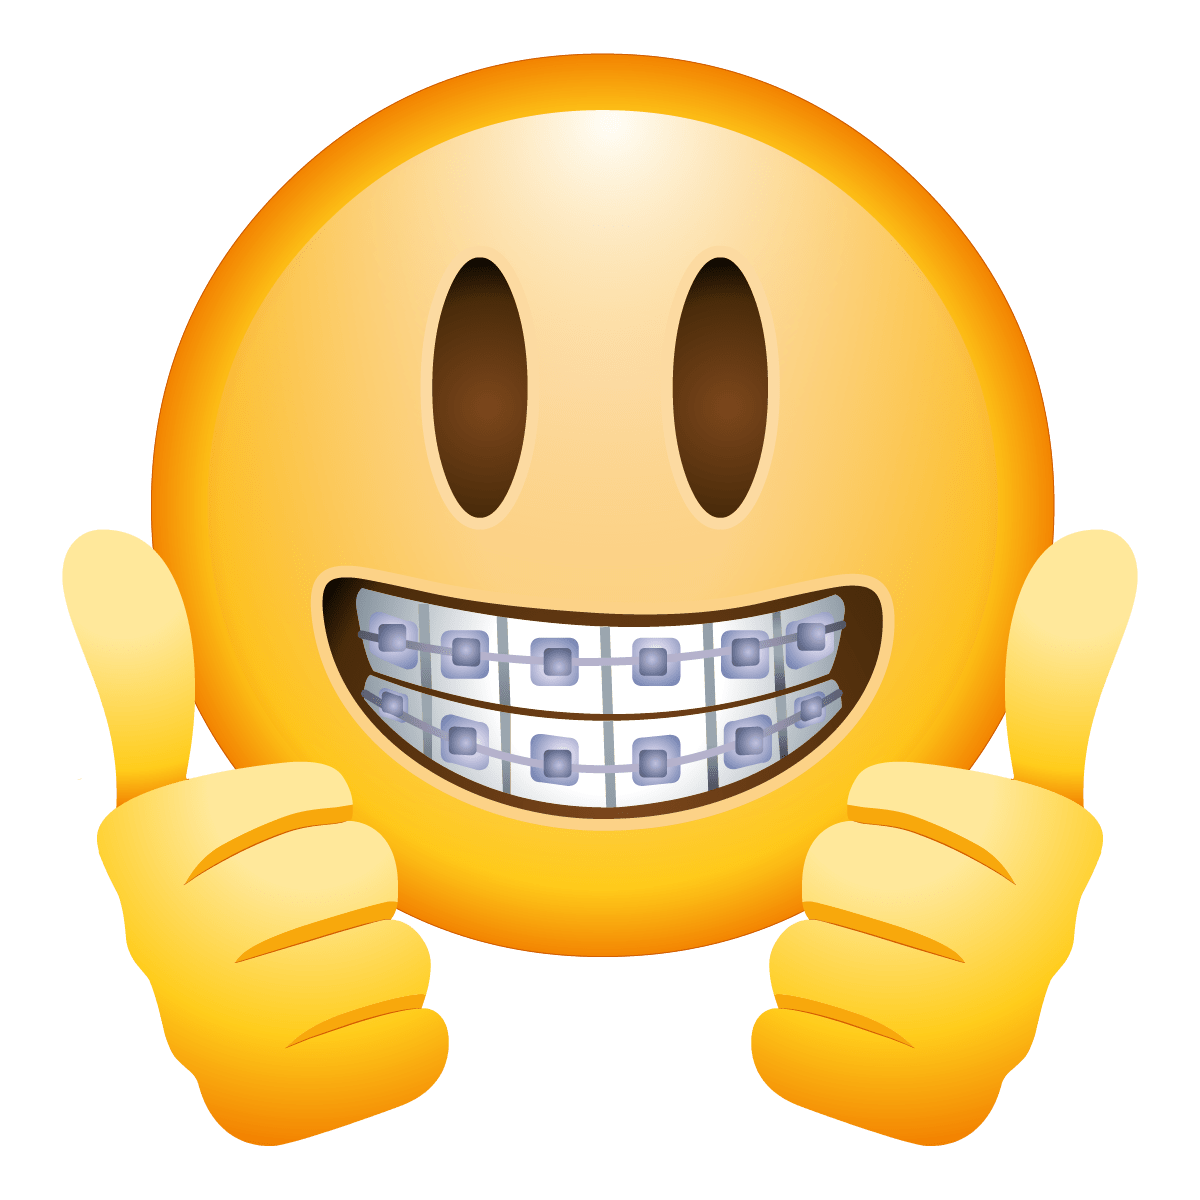 Braces Face Emoji transparent PNG.